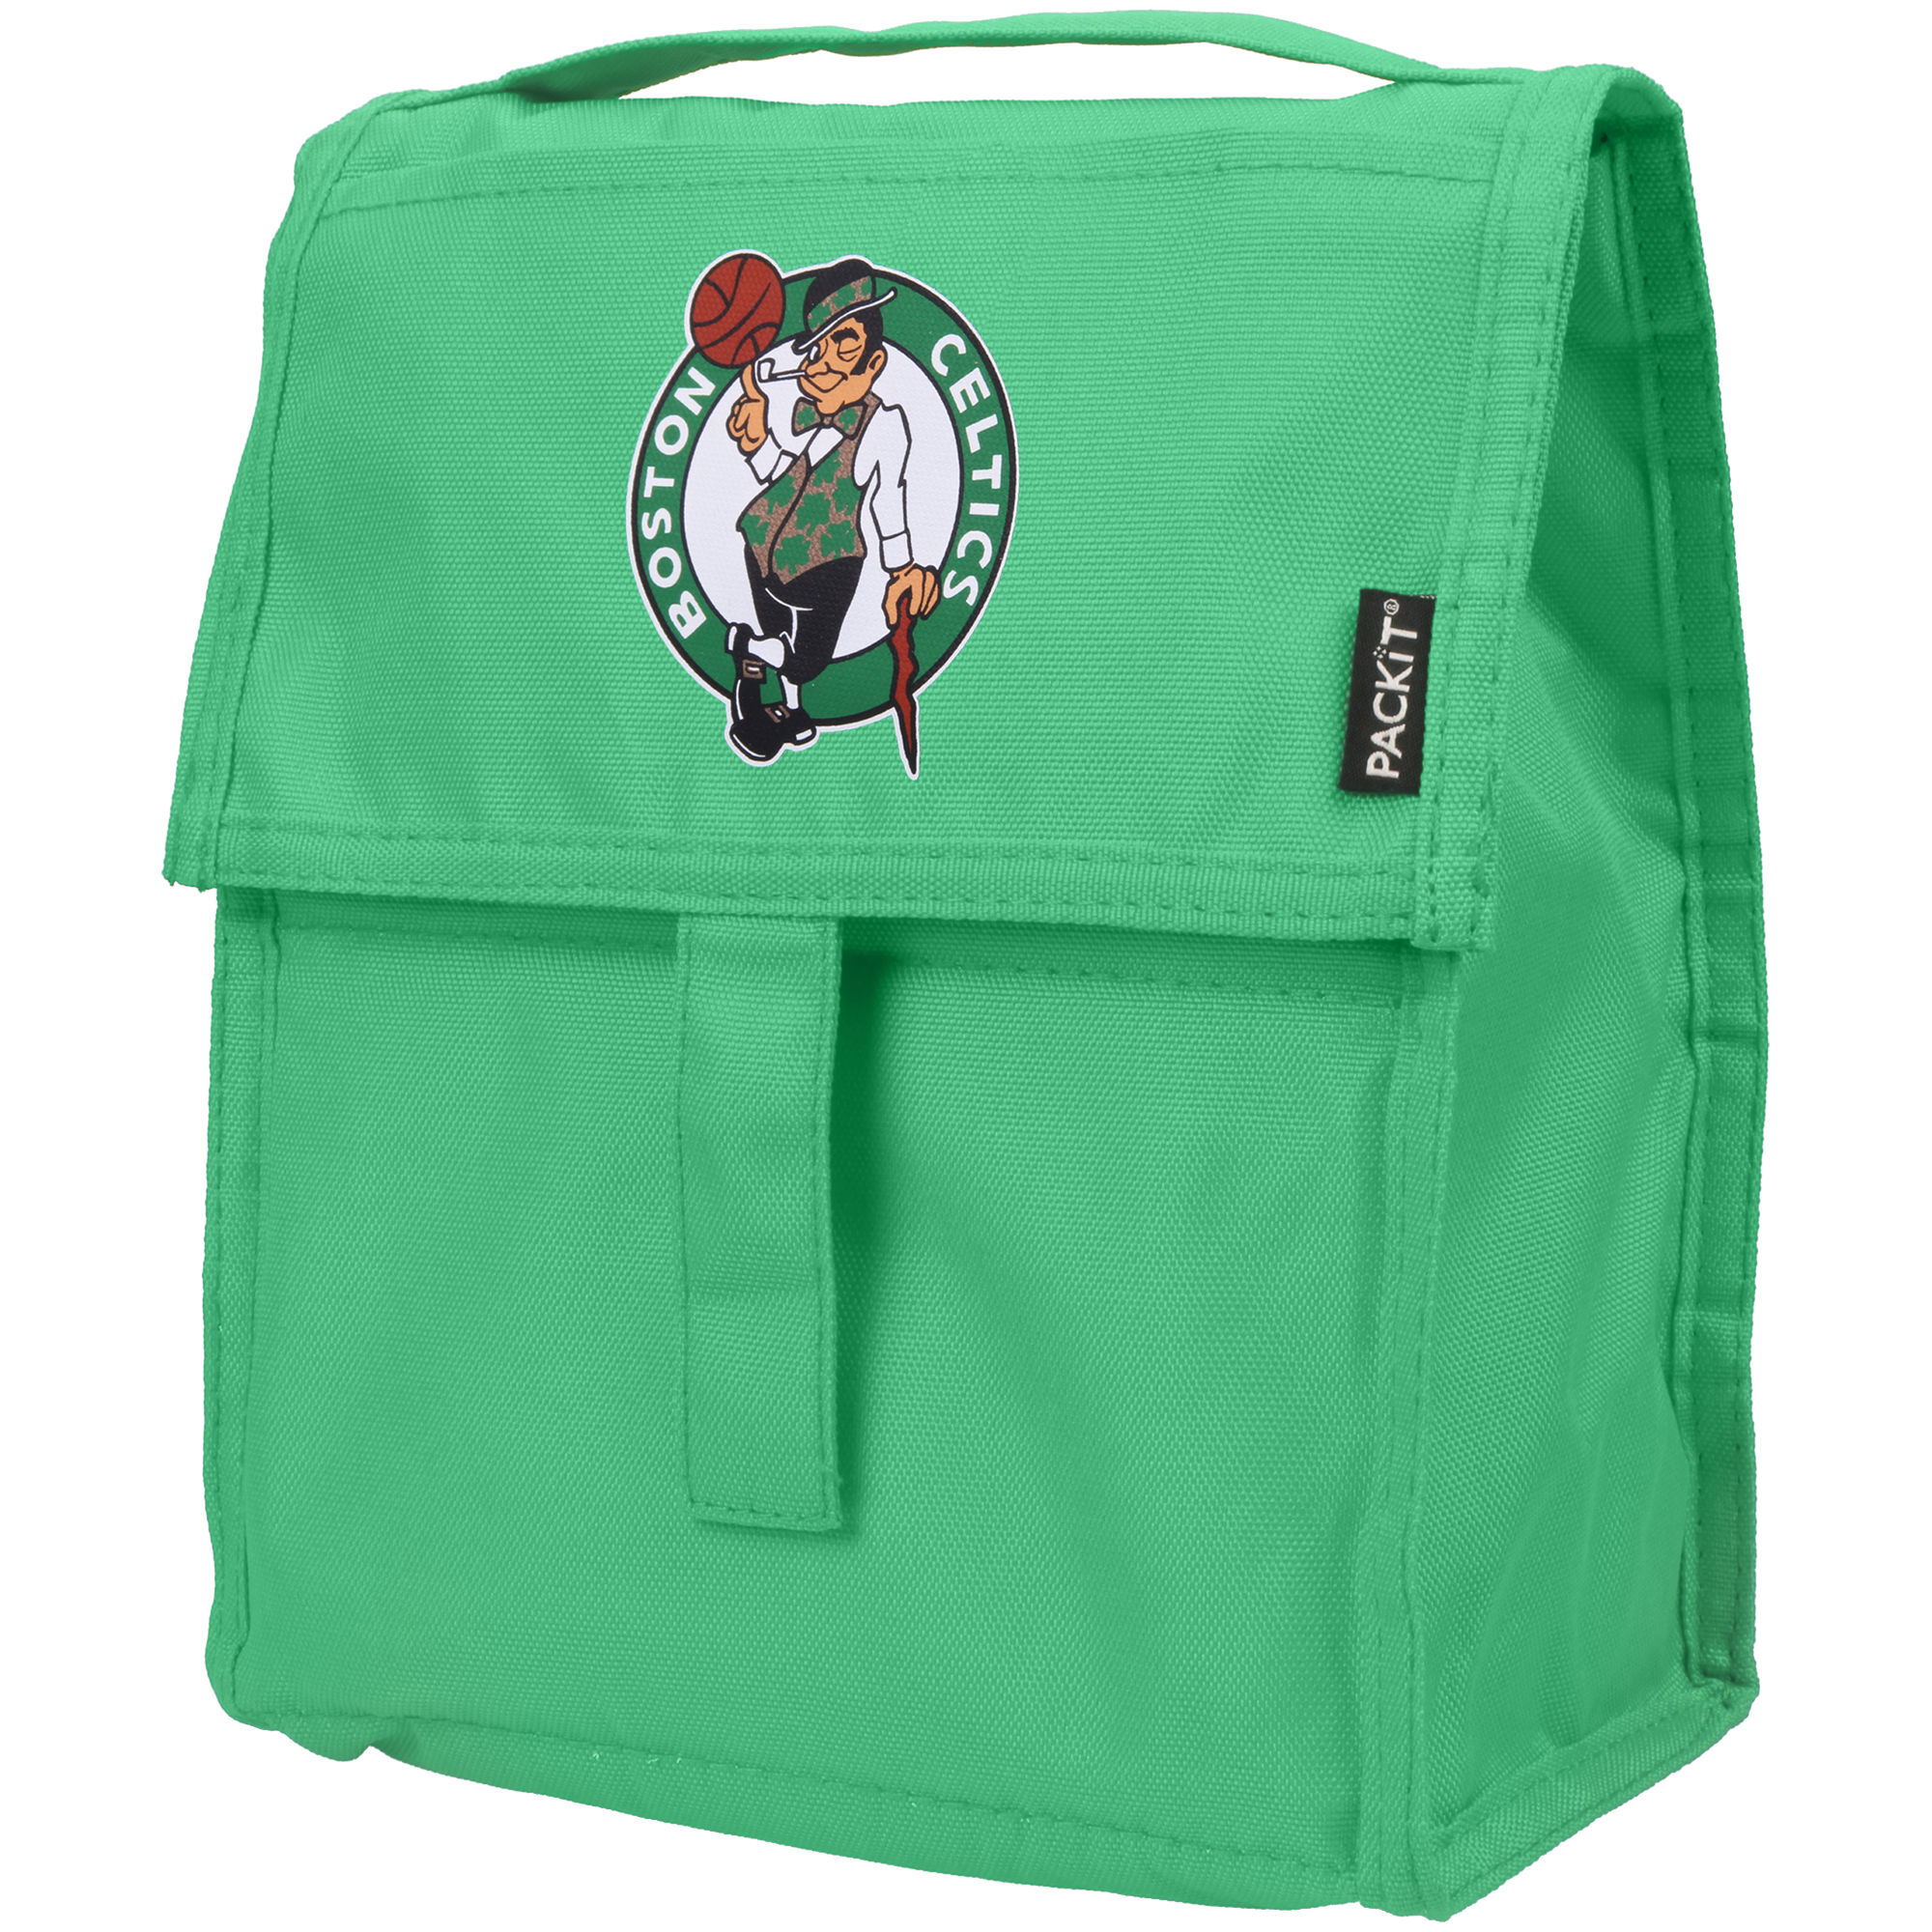 Boston Celtics PackIt Lunch Box - No Size